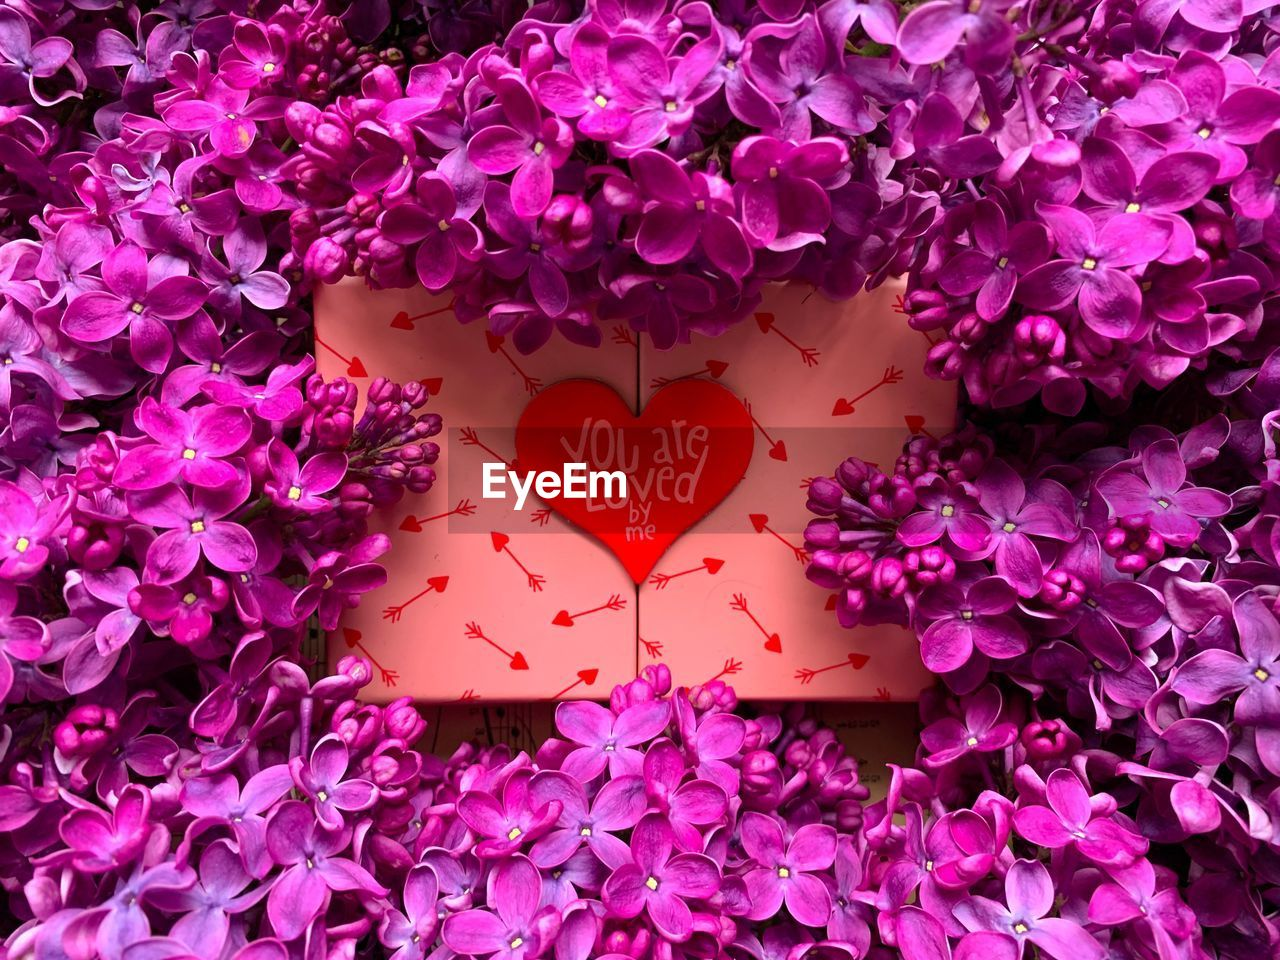 flower, love, communication, flowering plant, heart shape, positive emotion, plant, close-up, emotion, text, pink color, no people, freshness, beauty in nature, western script, petal, fragility, vulnerability, paper, message, outdoors, flower head, purple, valentine's day - holiday